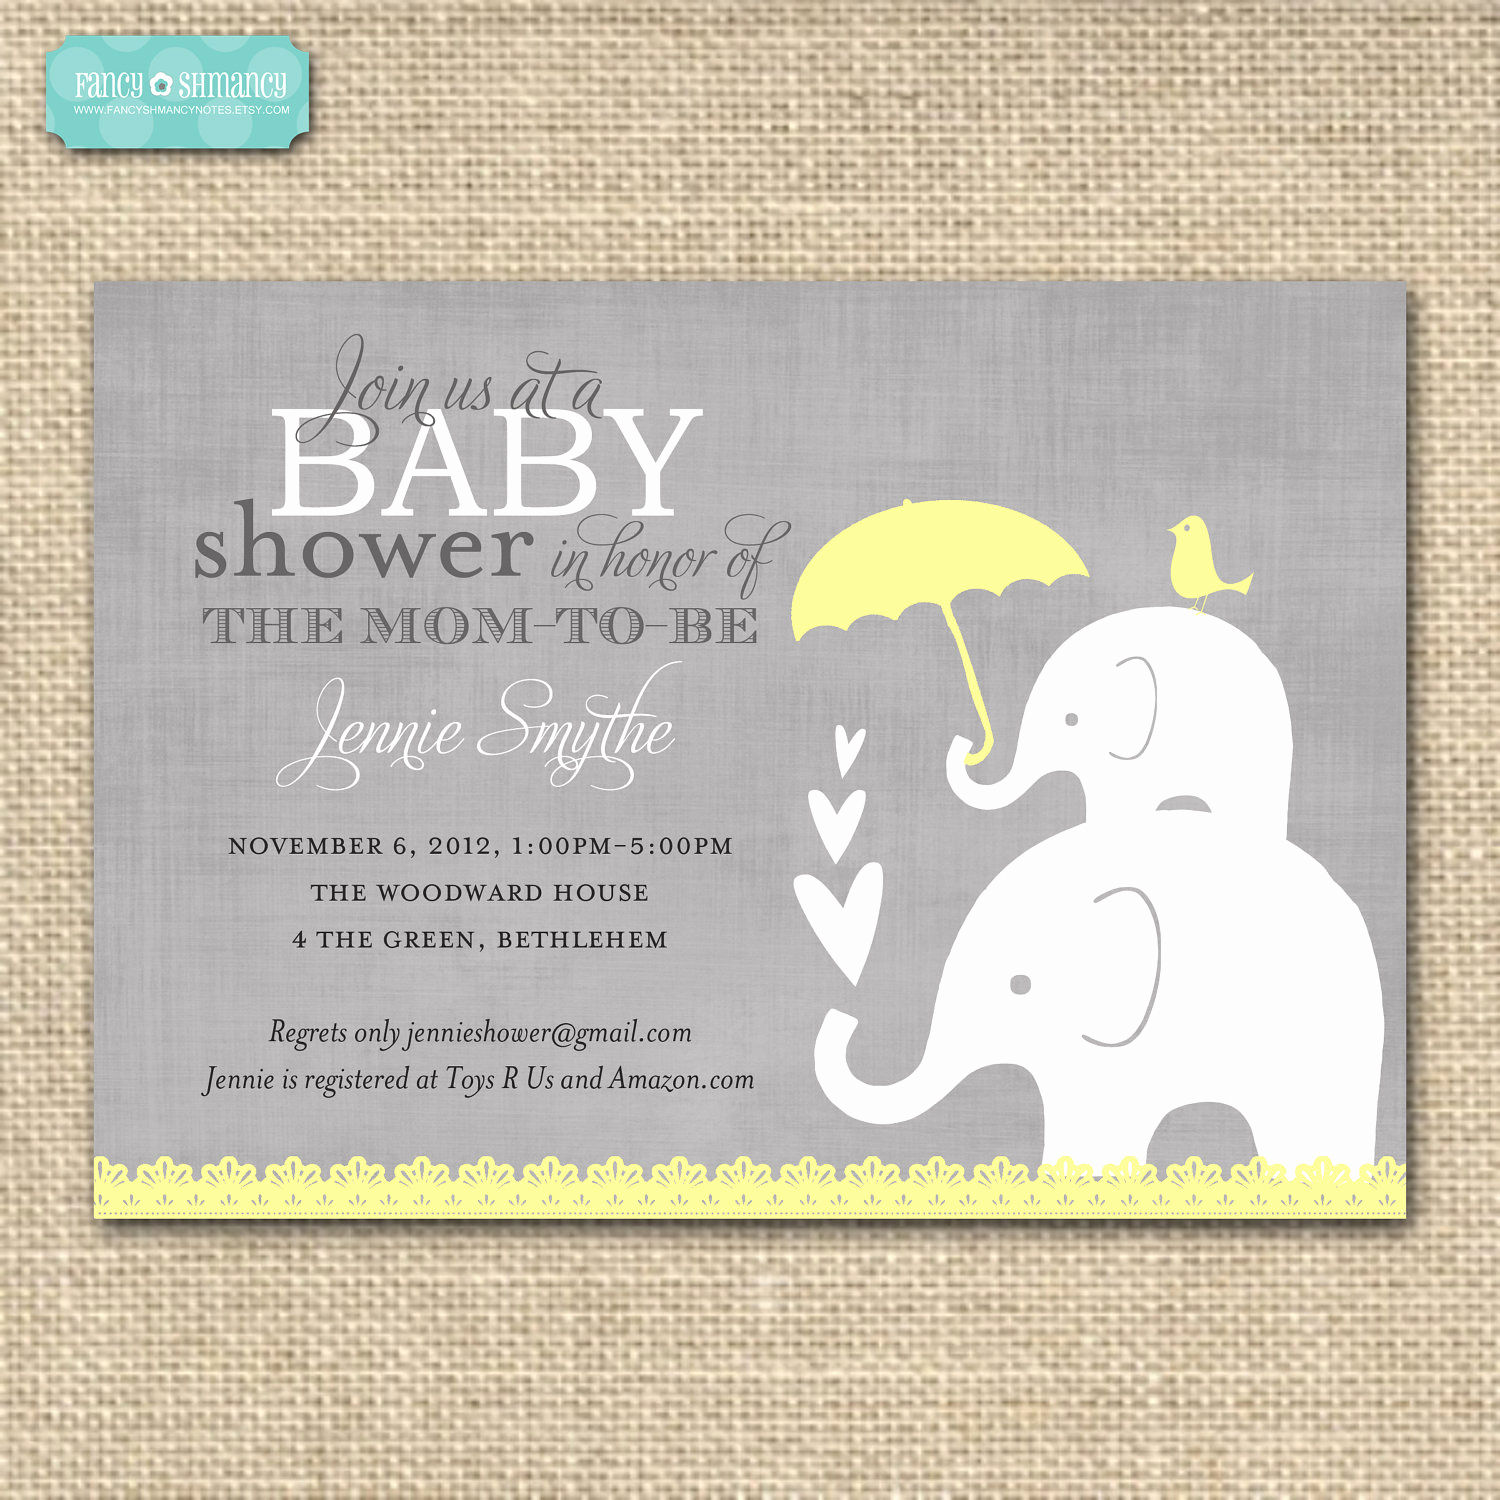 Baby Shower Invitation themes Beautiful Baby Shower Invitationelephant Yellow and by